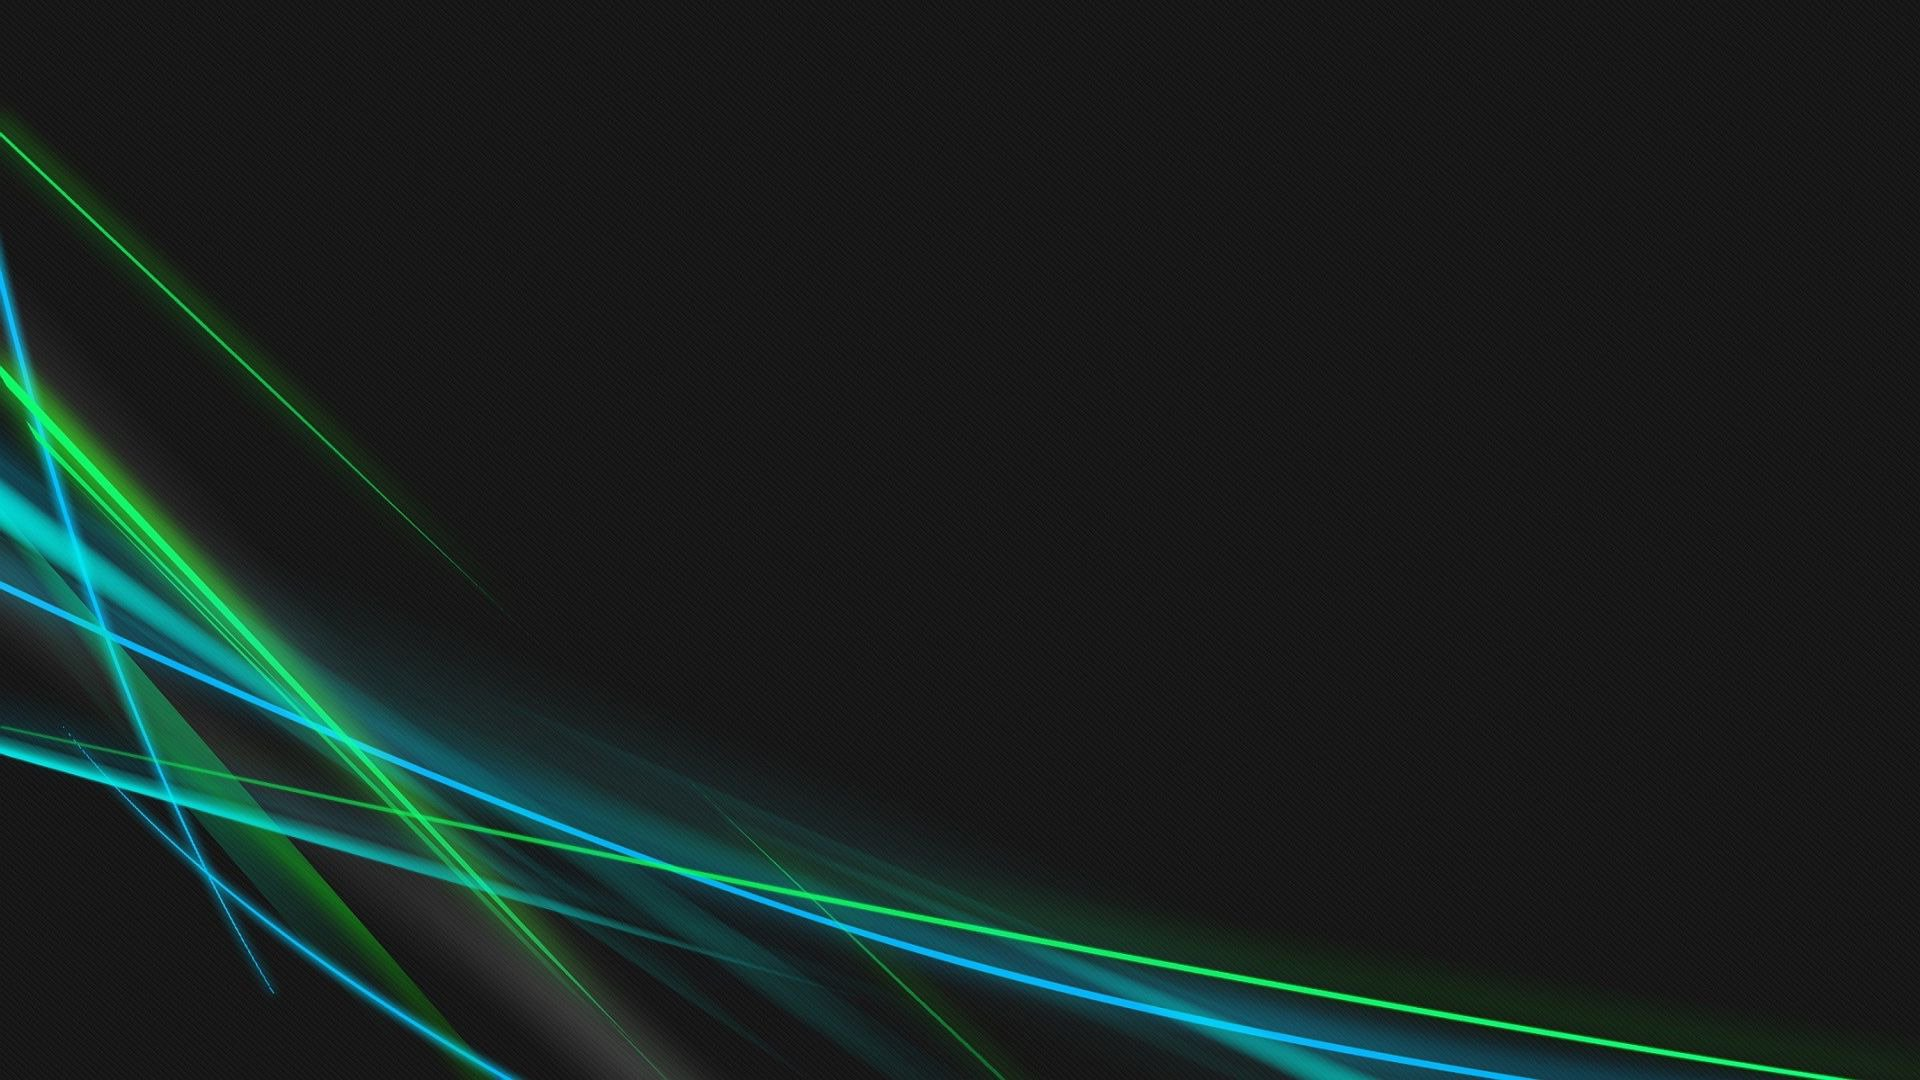 Blue and green neon curves wallpaper   578863 1920x1080